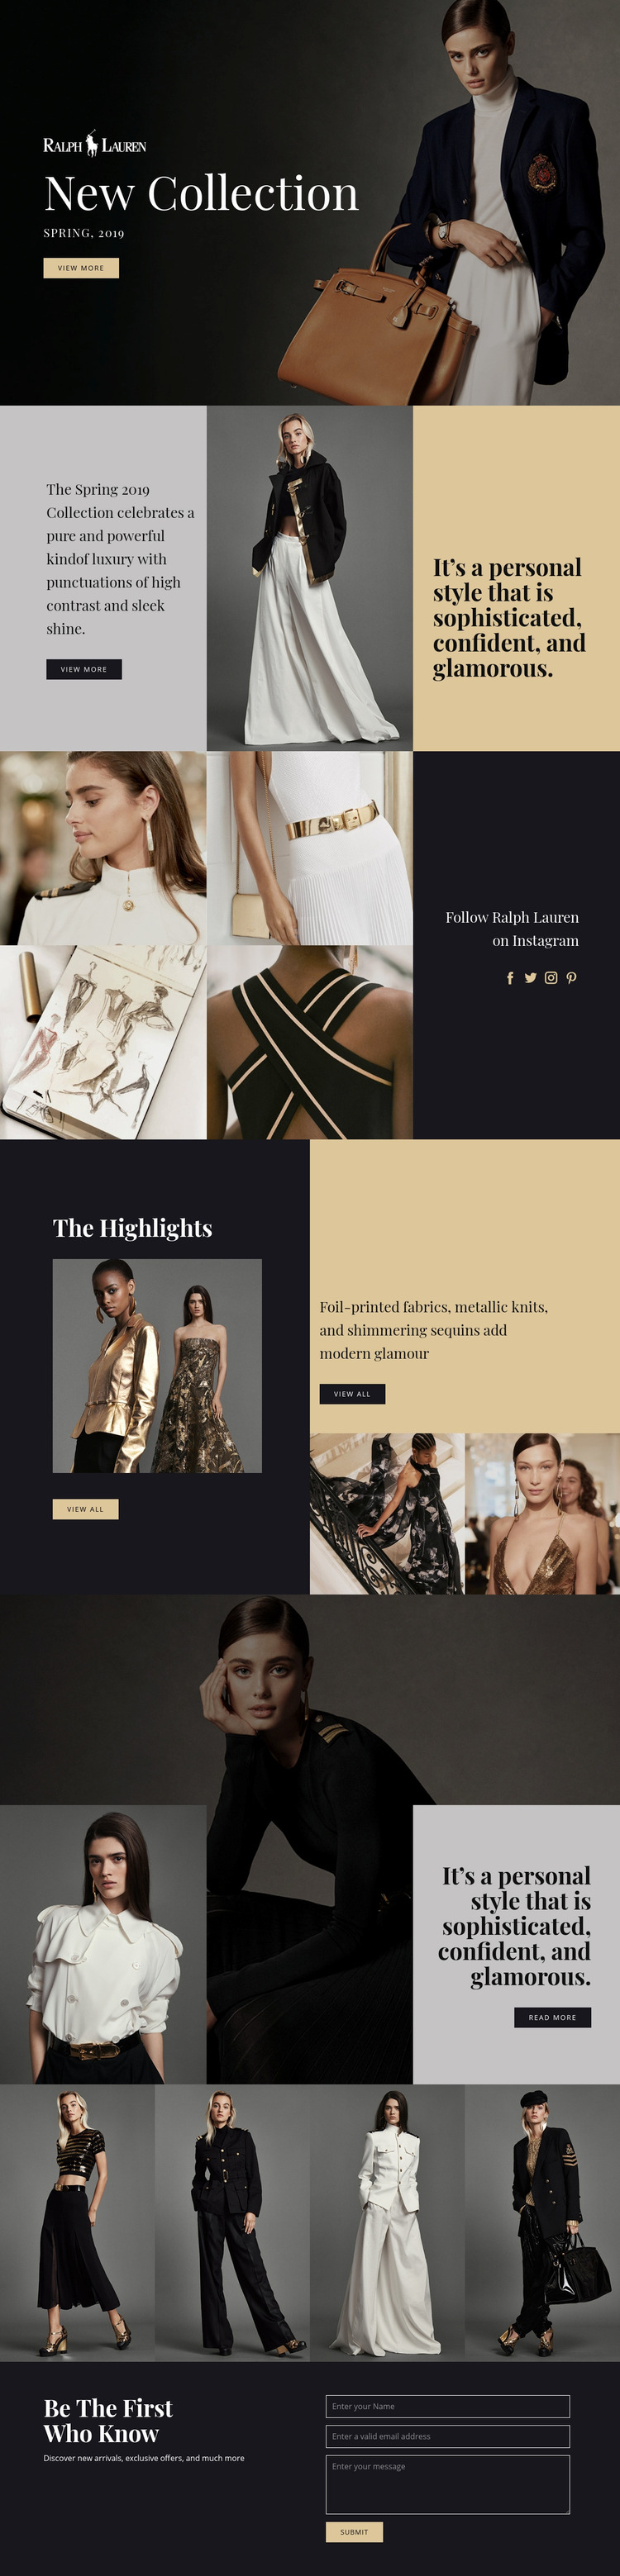 Ralph Lauren fashion Website Maker